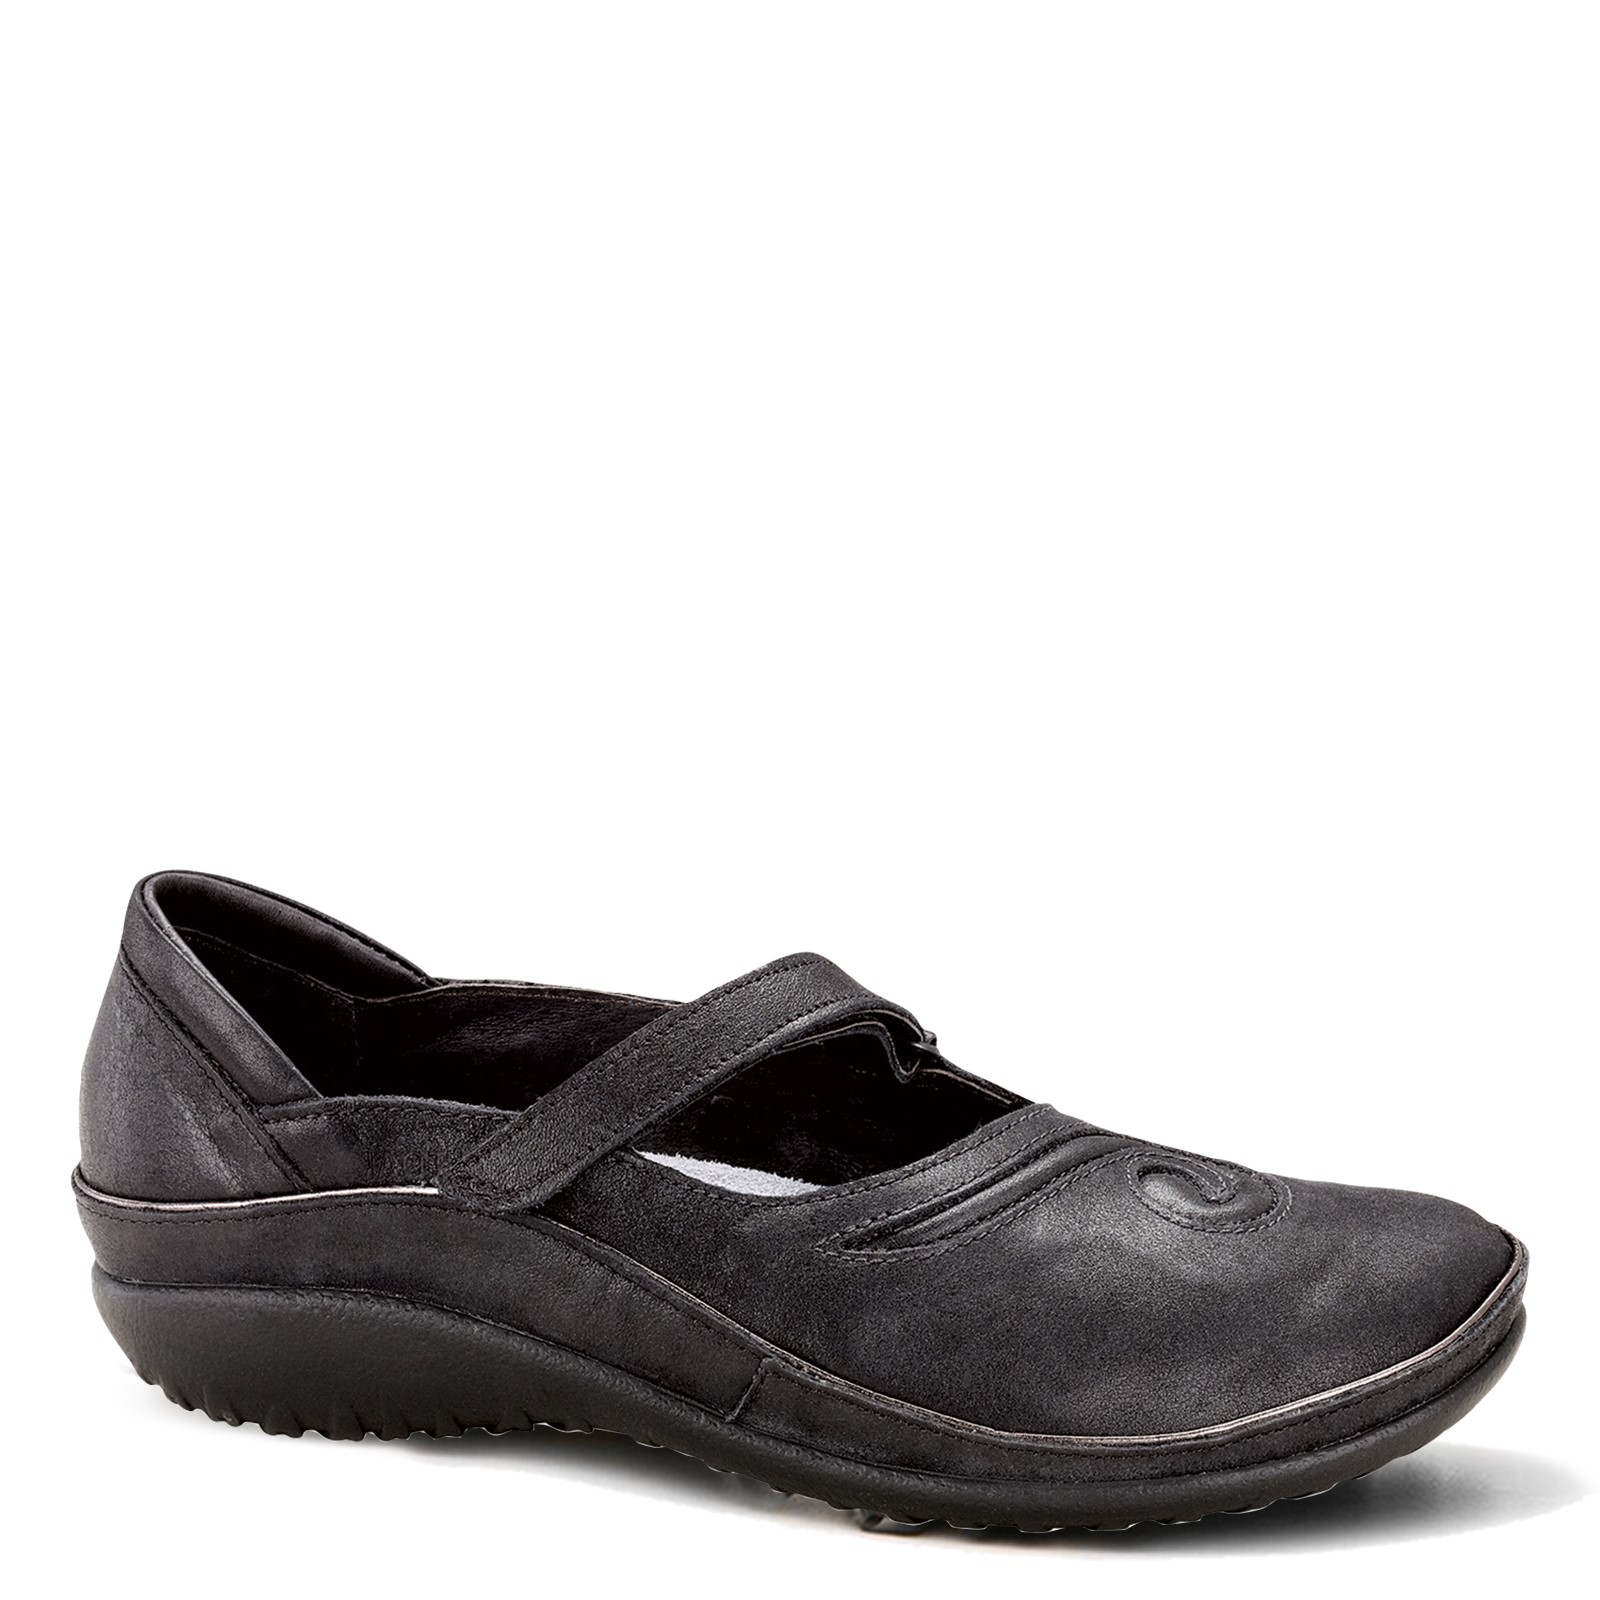 Women's Naot, Matai Slip-on Shoe